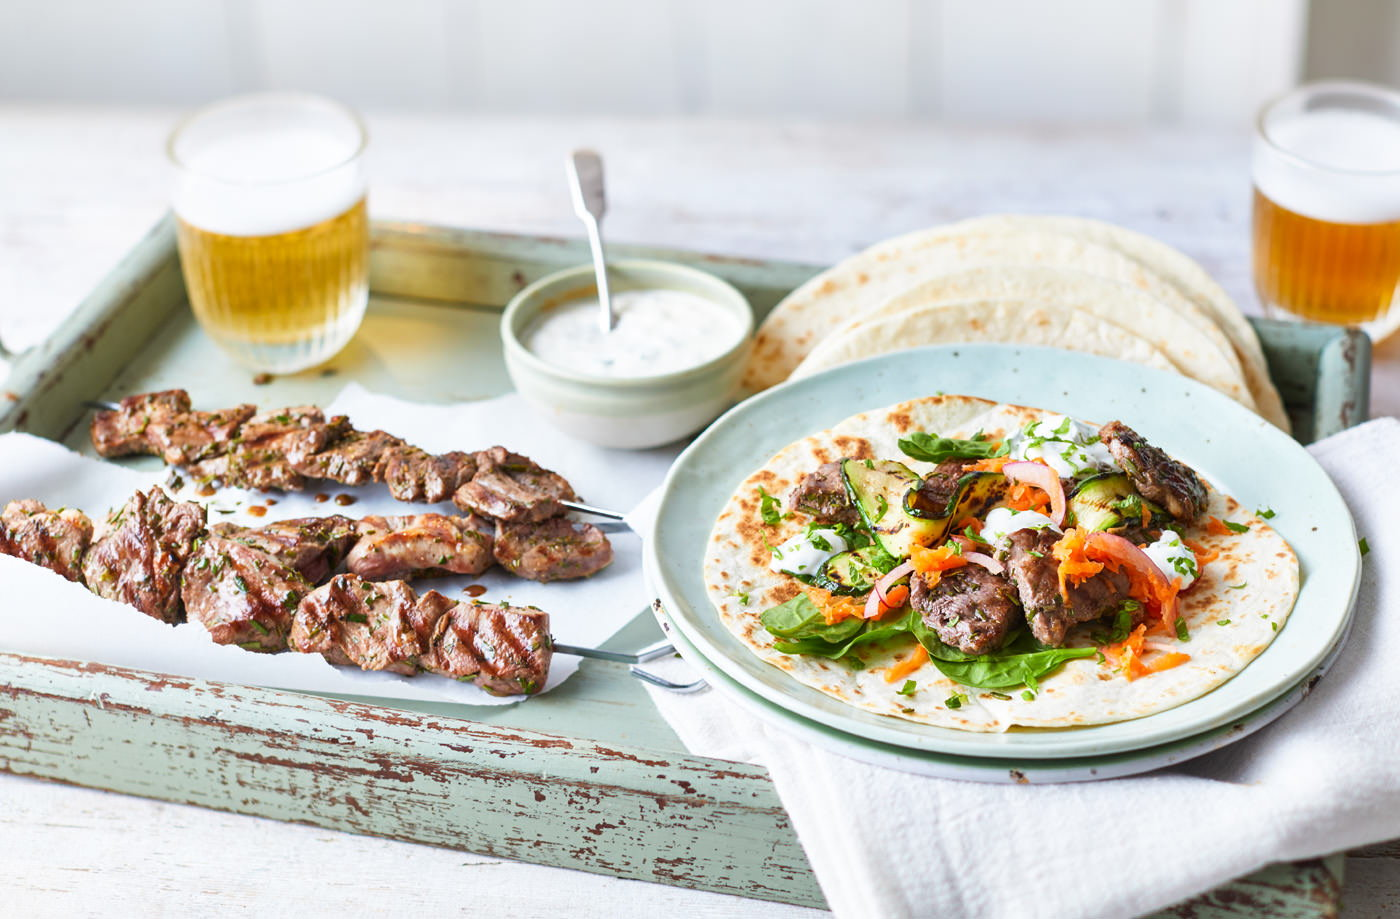 Lamb kebabs with pickled carrot and mint yogurt